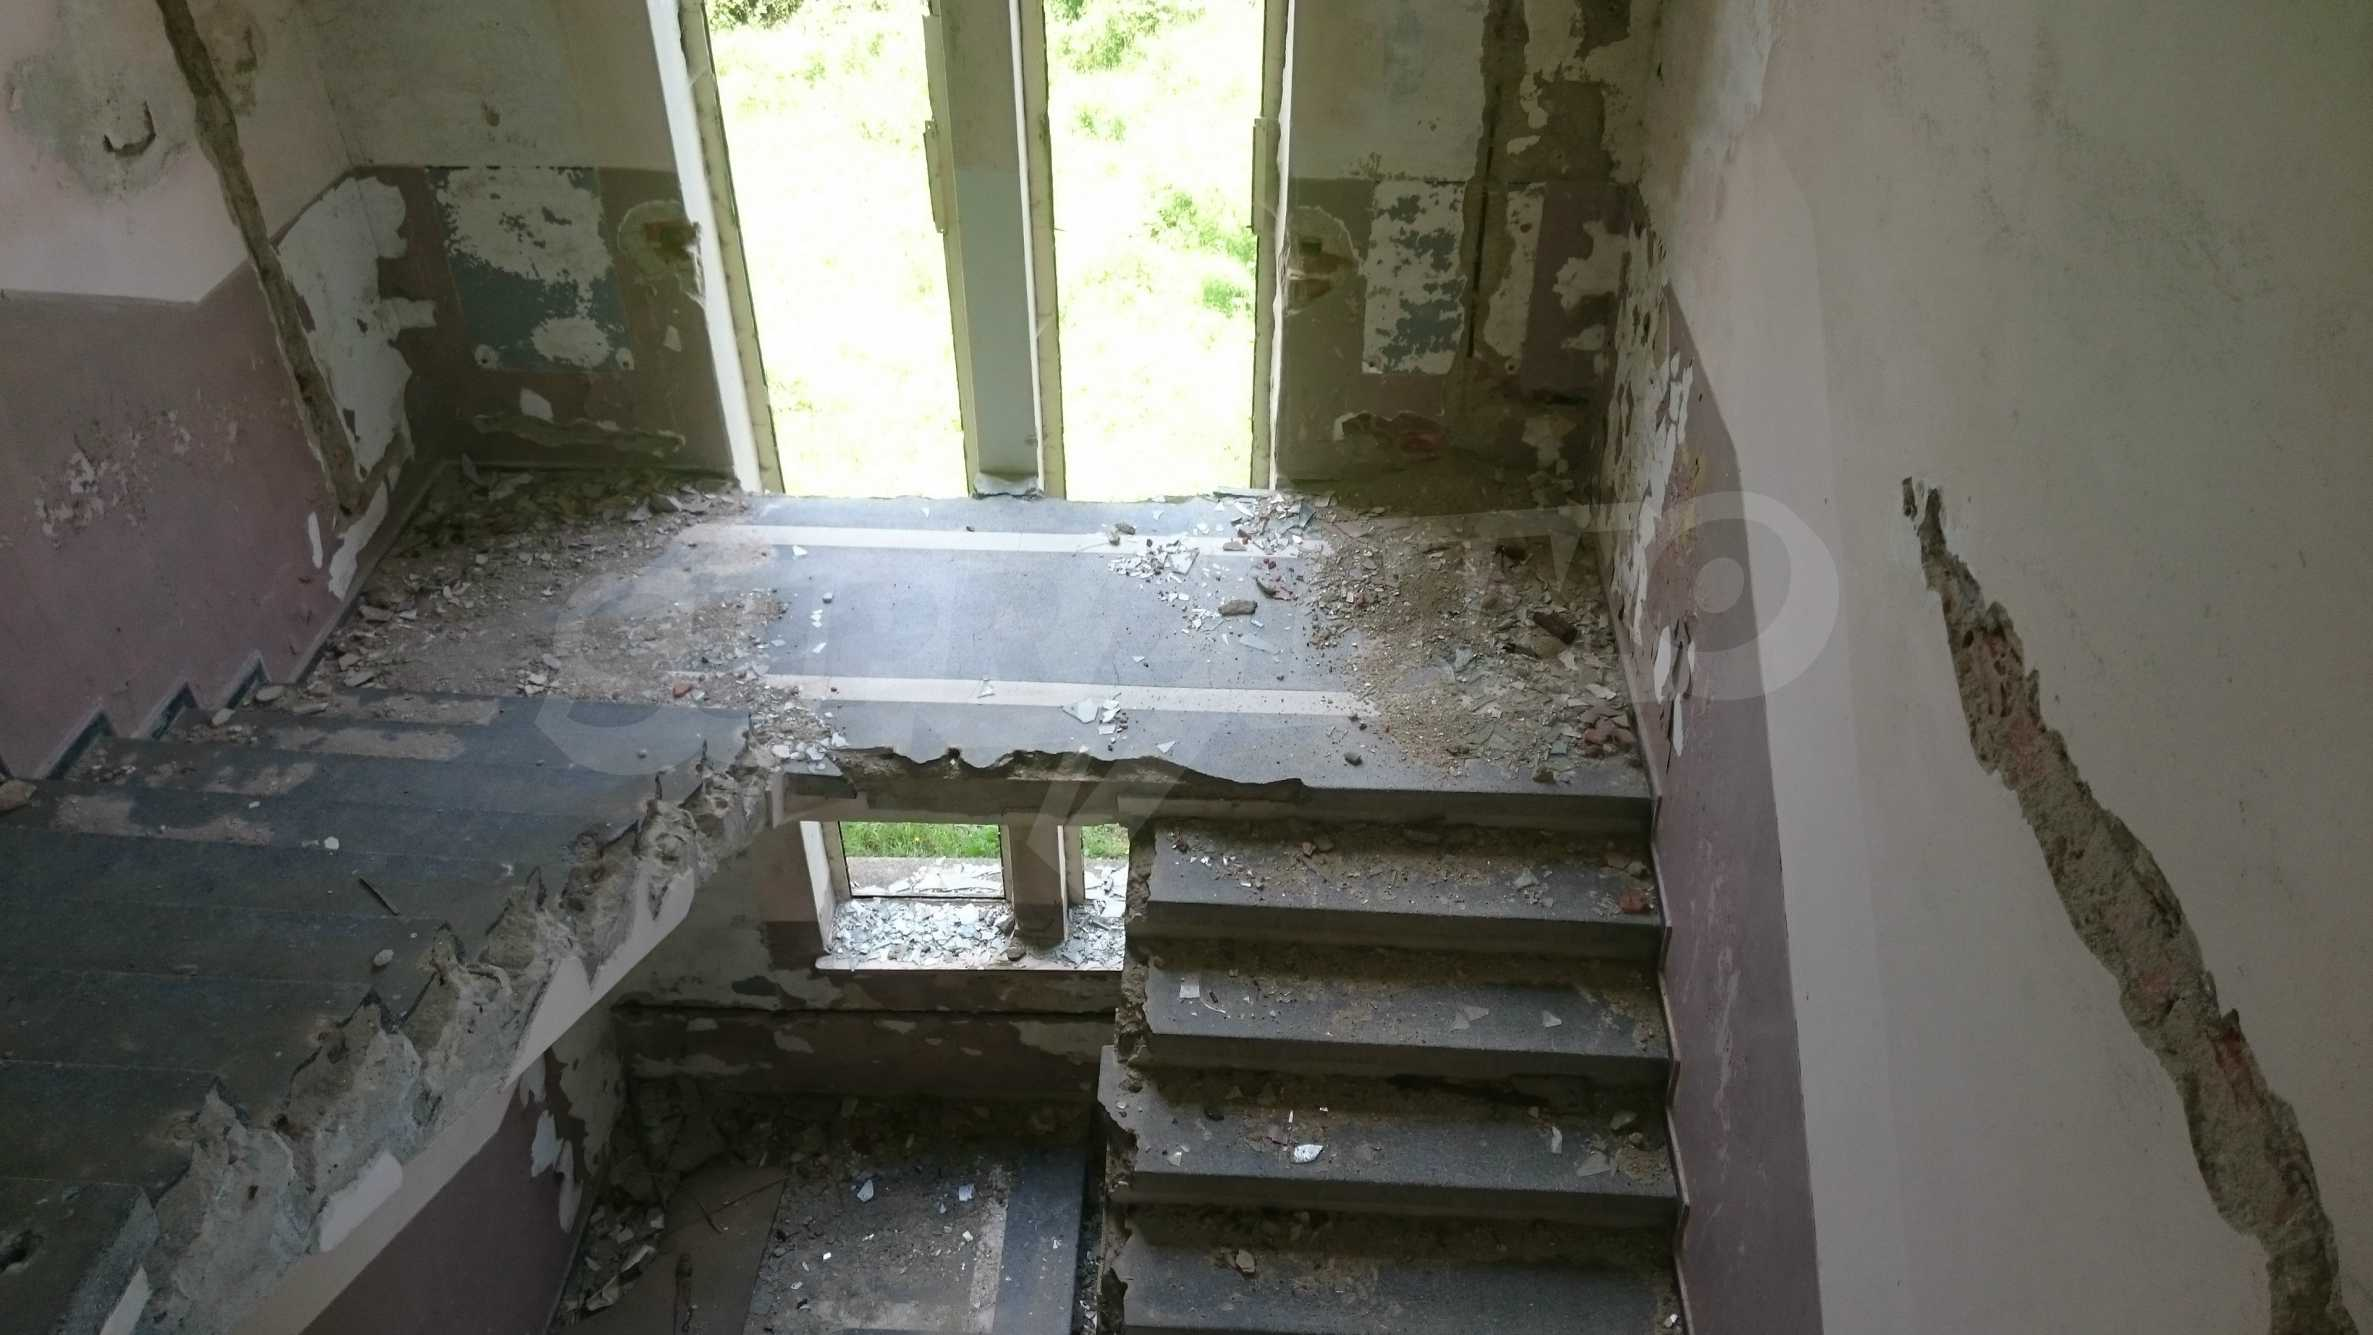 Hotel in need of complete renovation 37